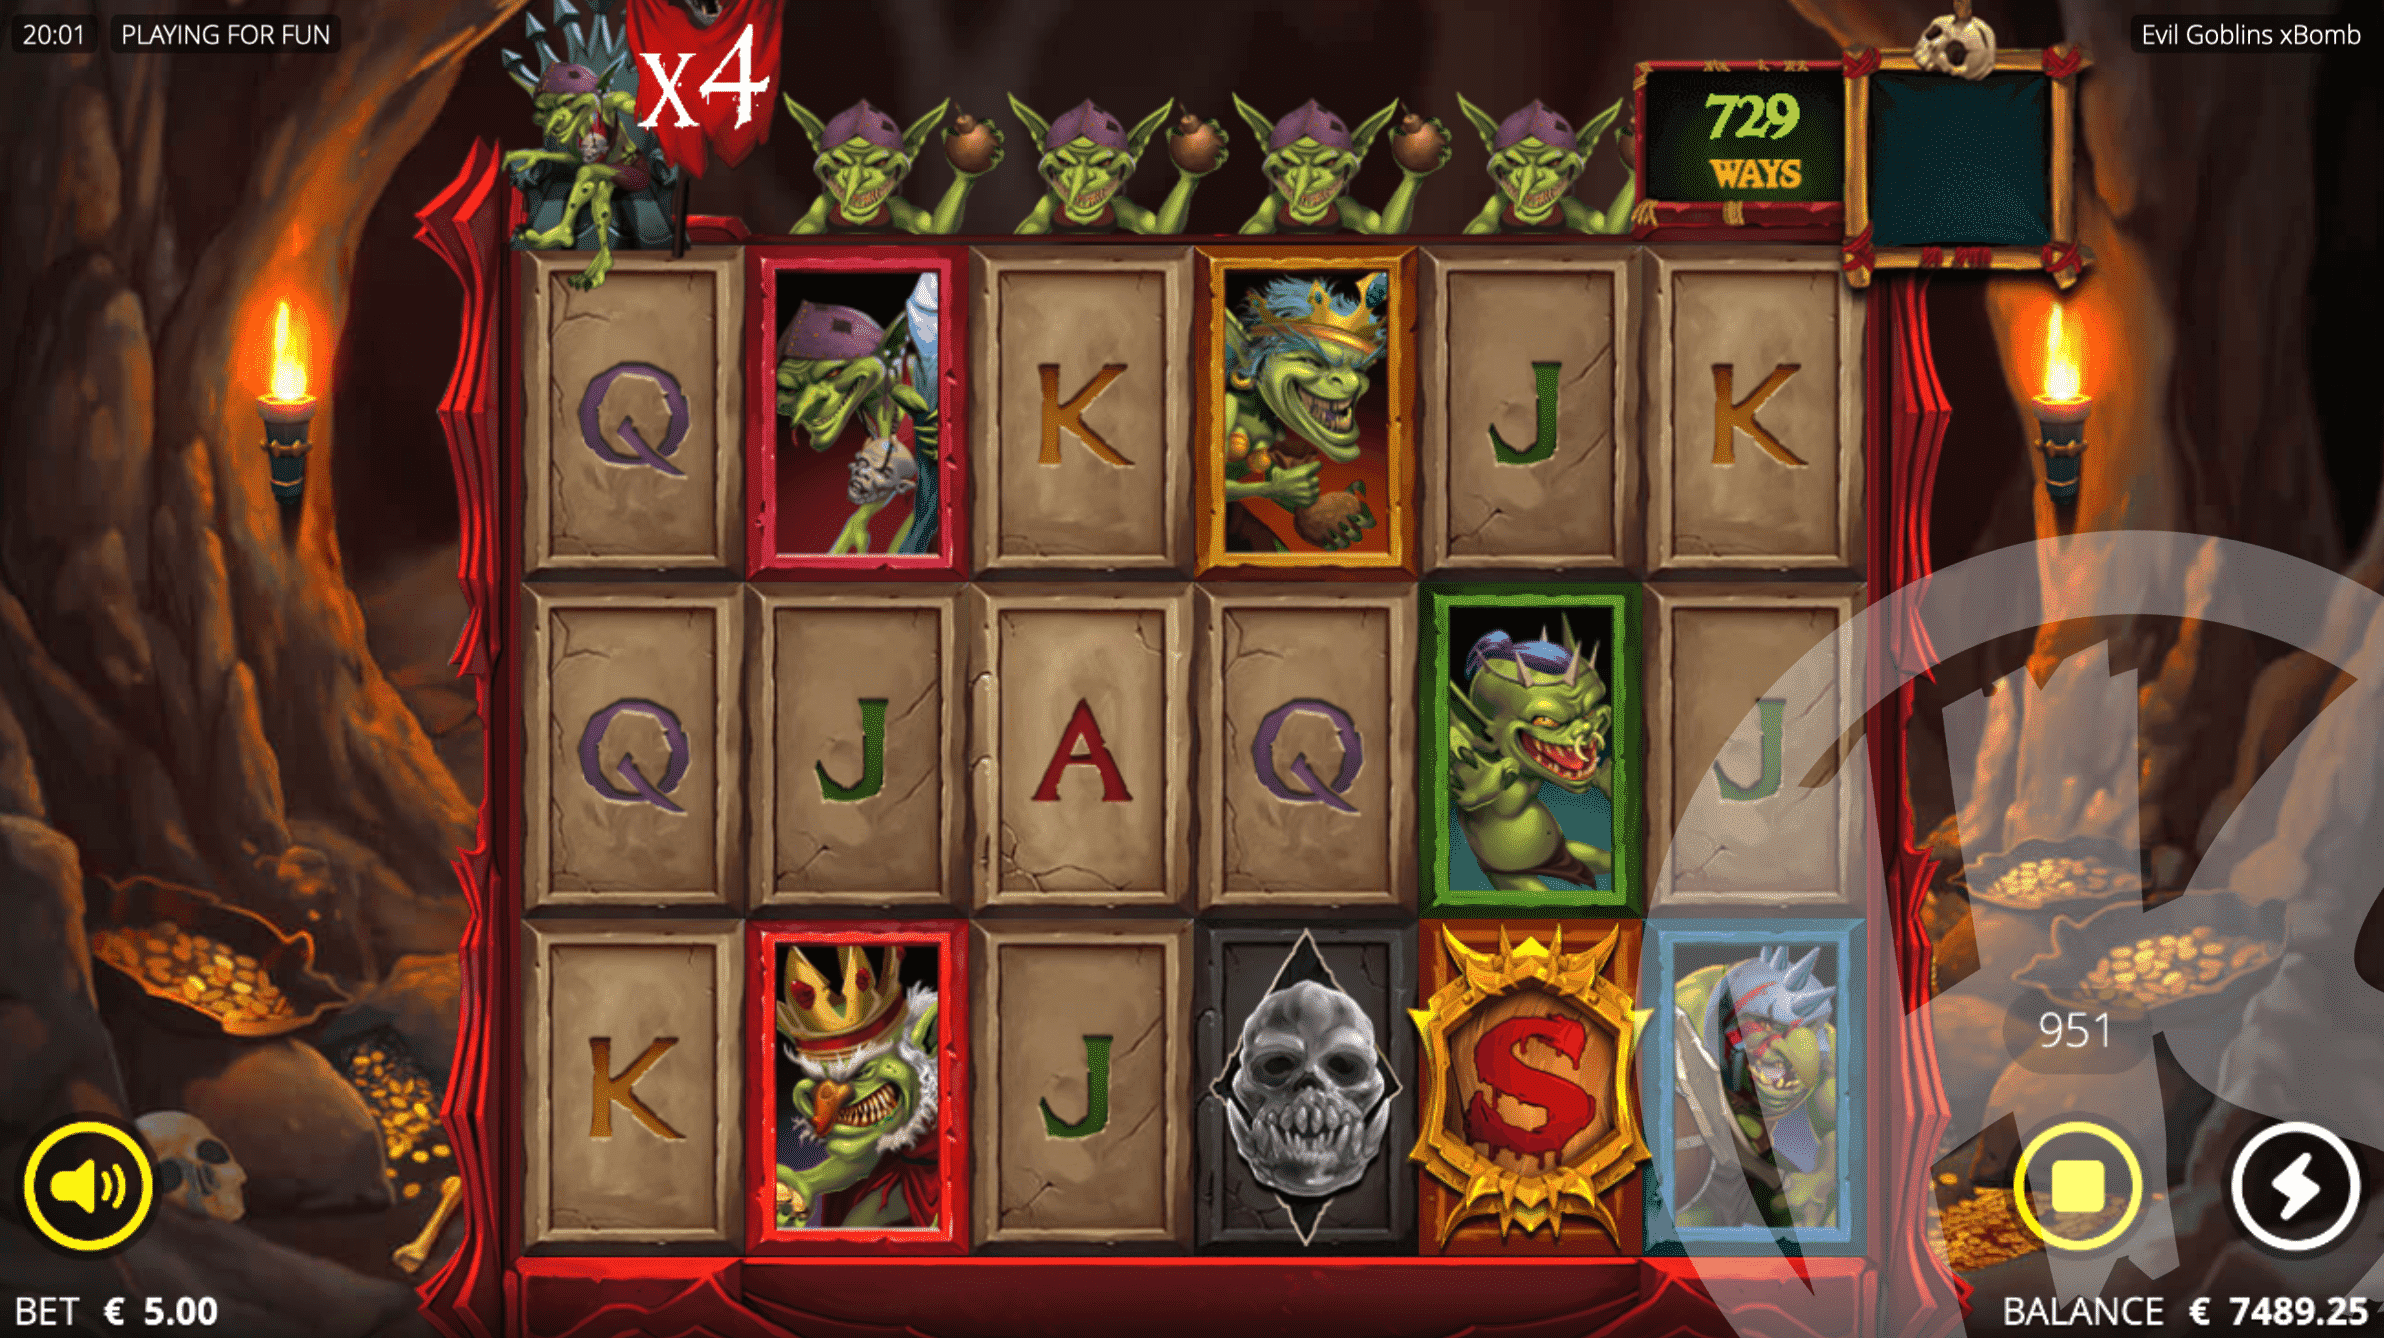 Match All 4 Goblins on Top of The Reels to Trigger the Evil 4 Feature